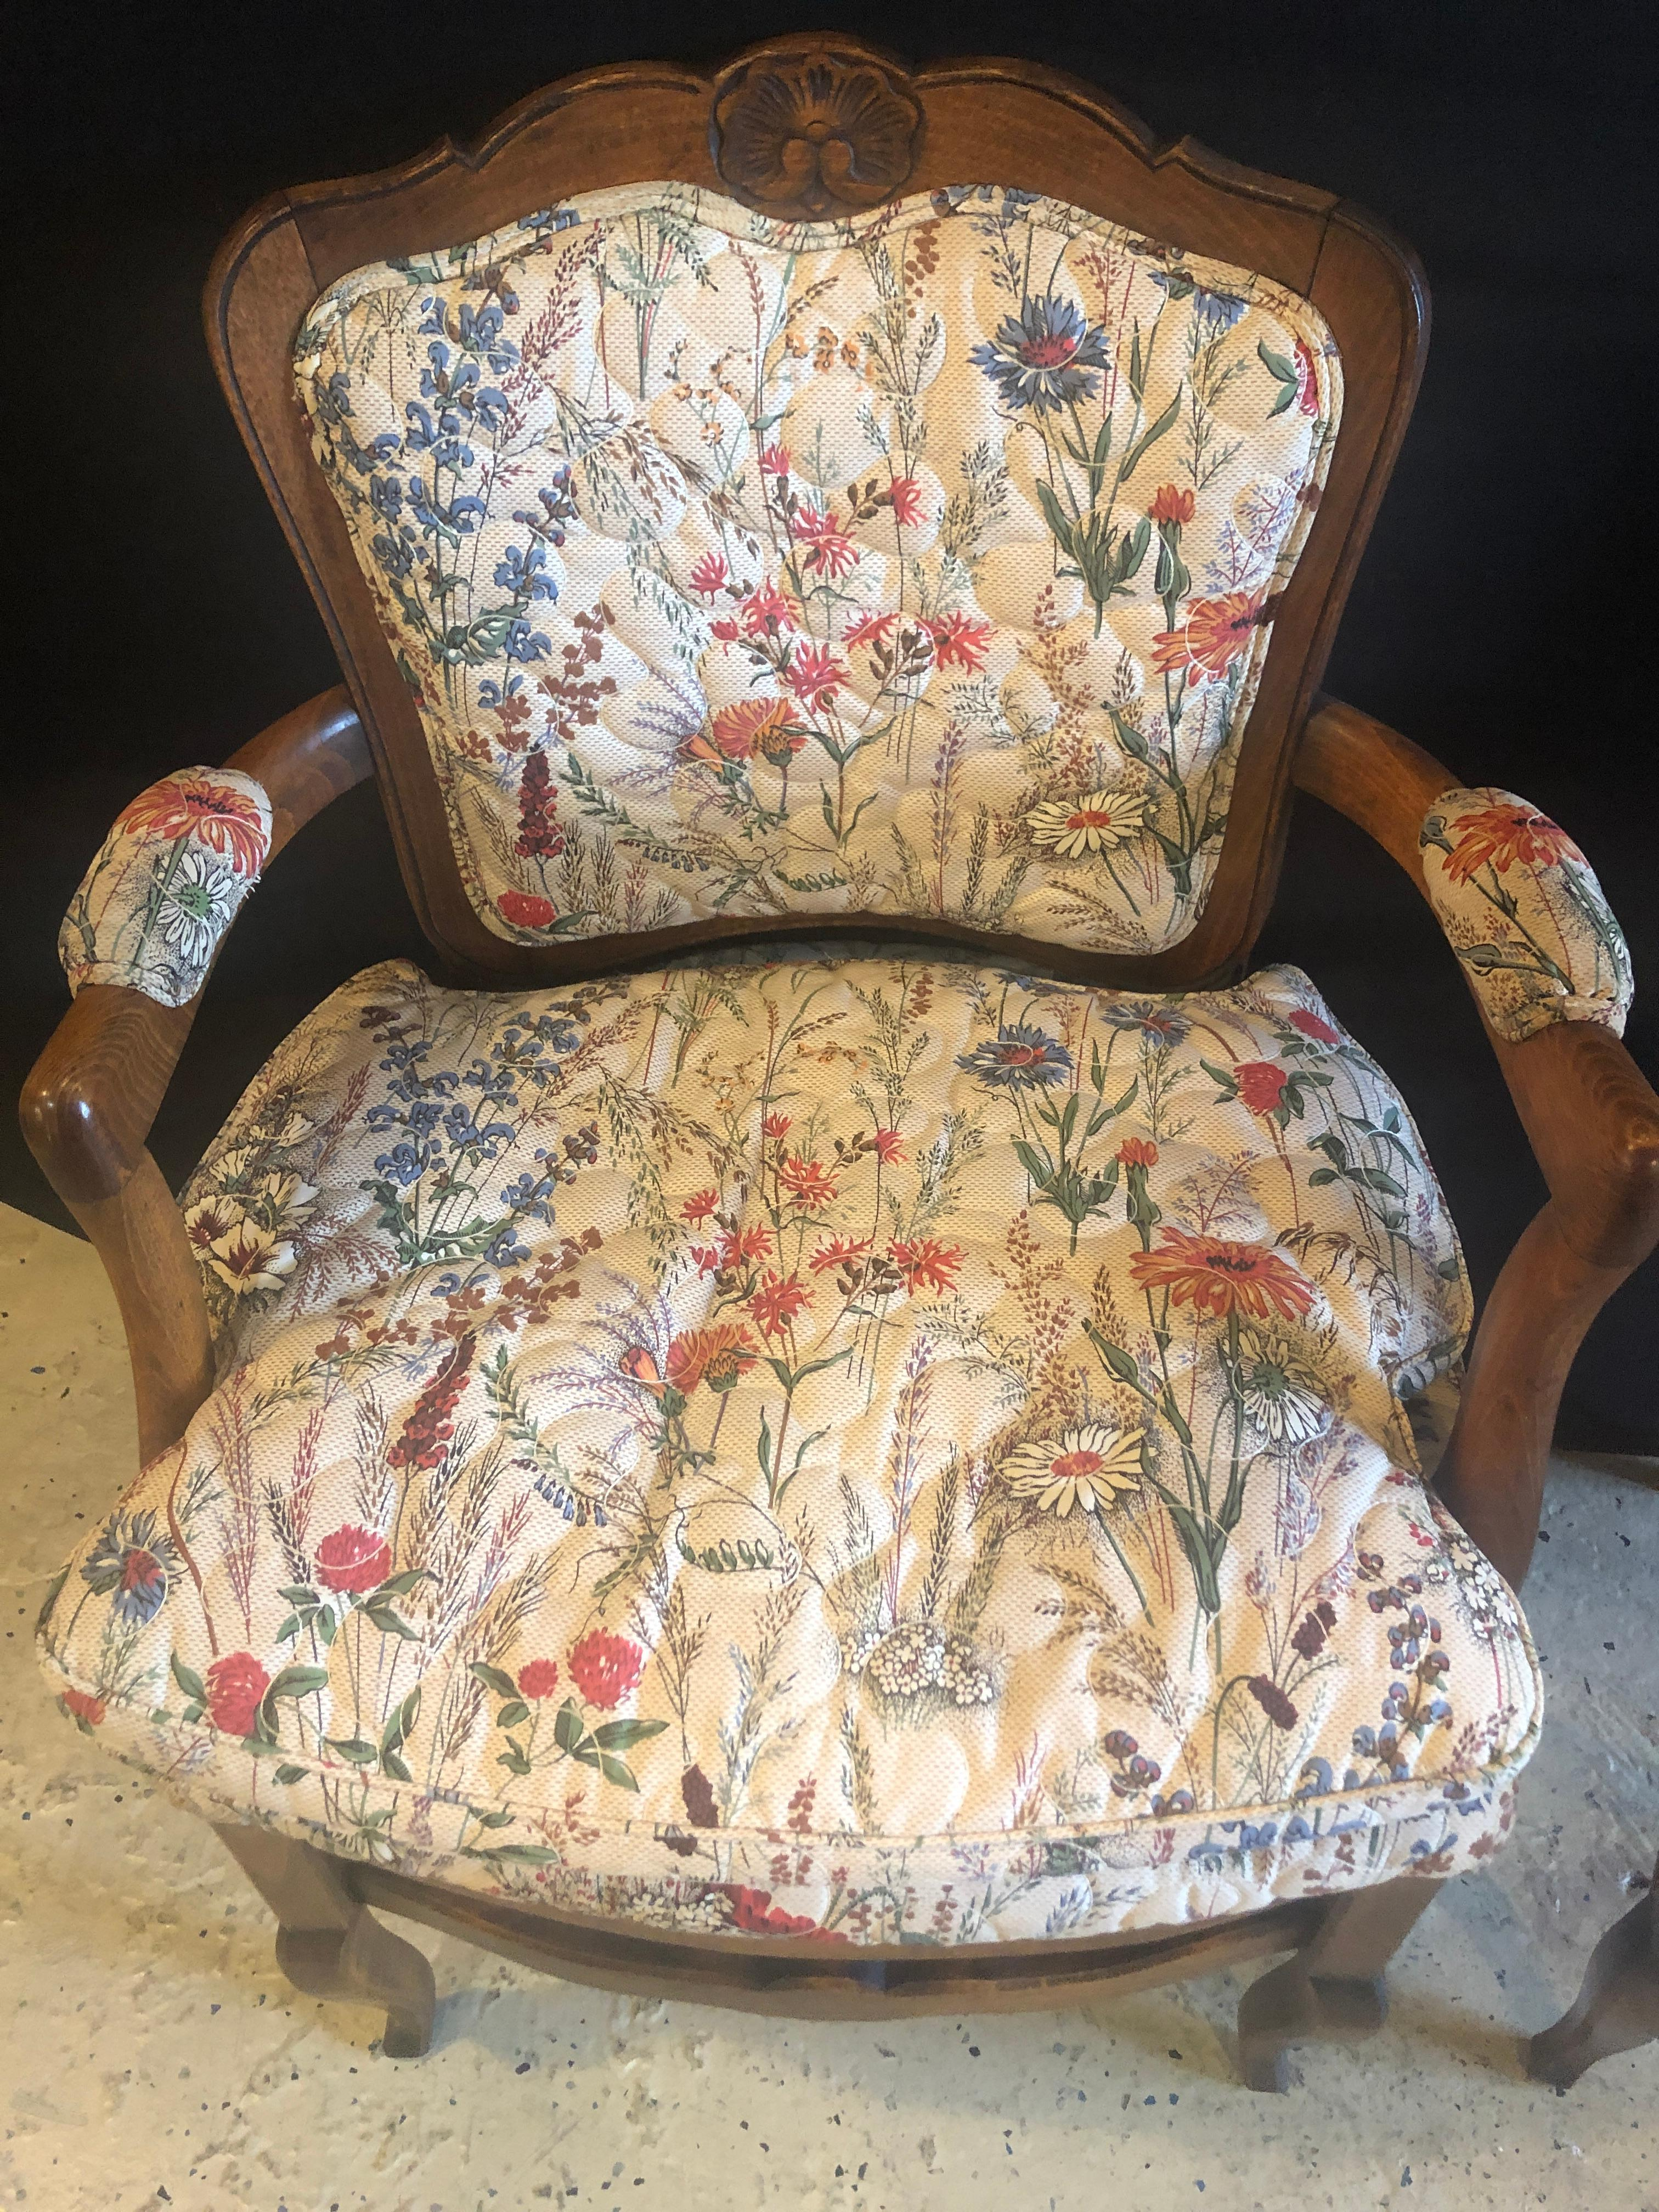 Fauteuils Boudoirs Country French Boudoir Fauteuil Louis Xv Chairs In Quilted Like Upholstery Pair